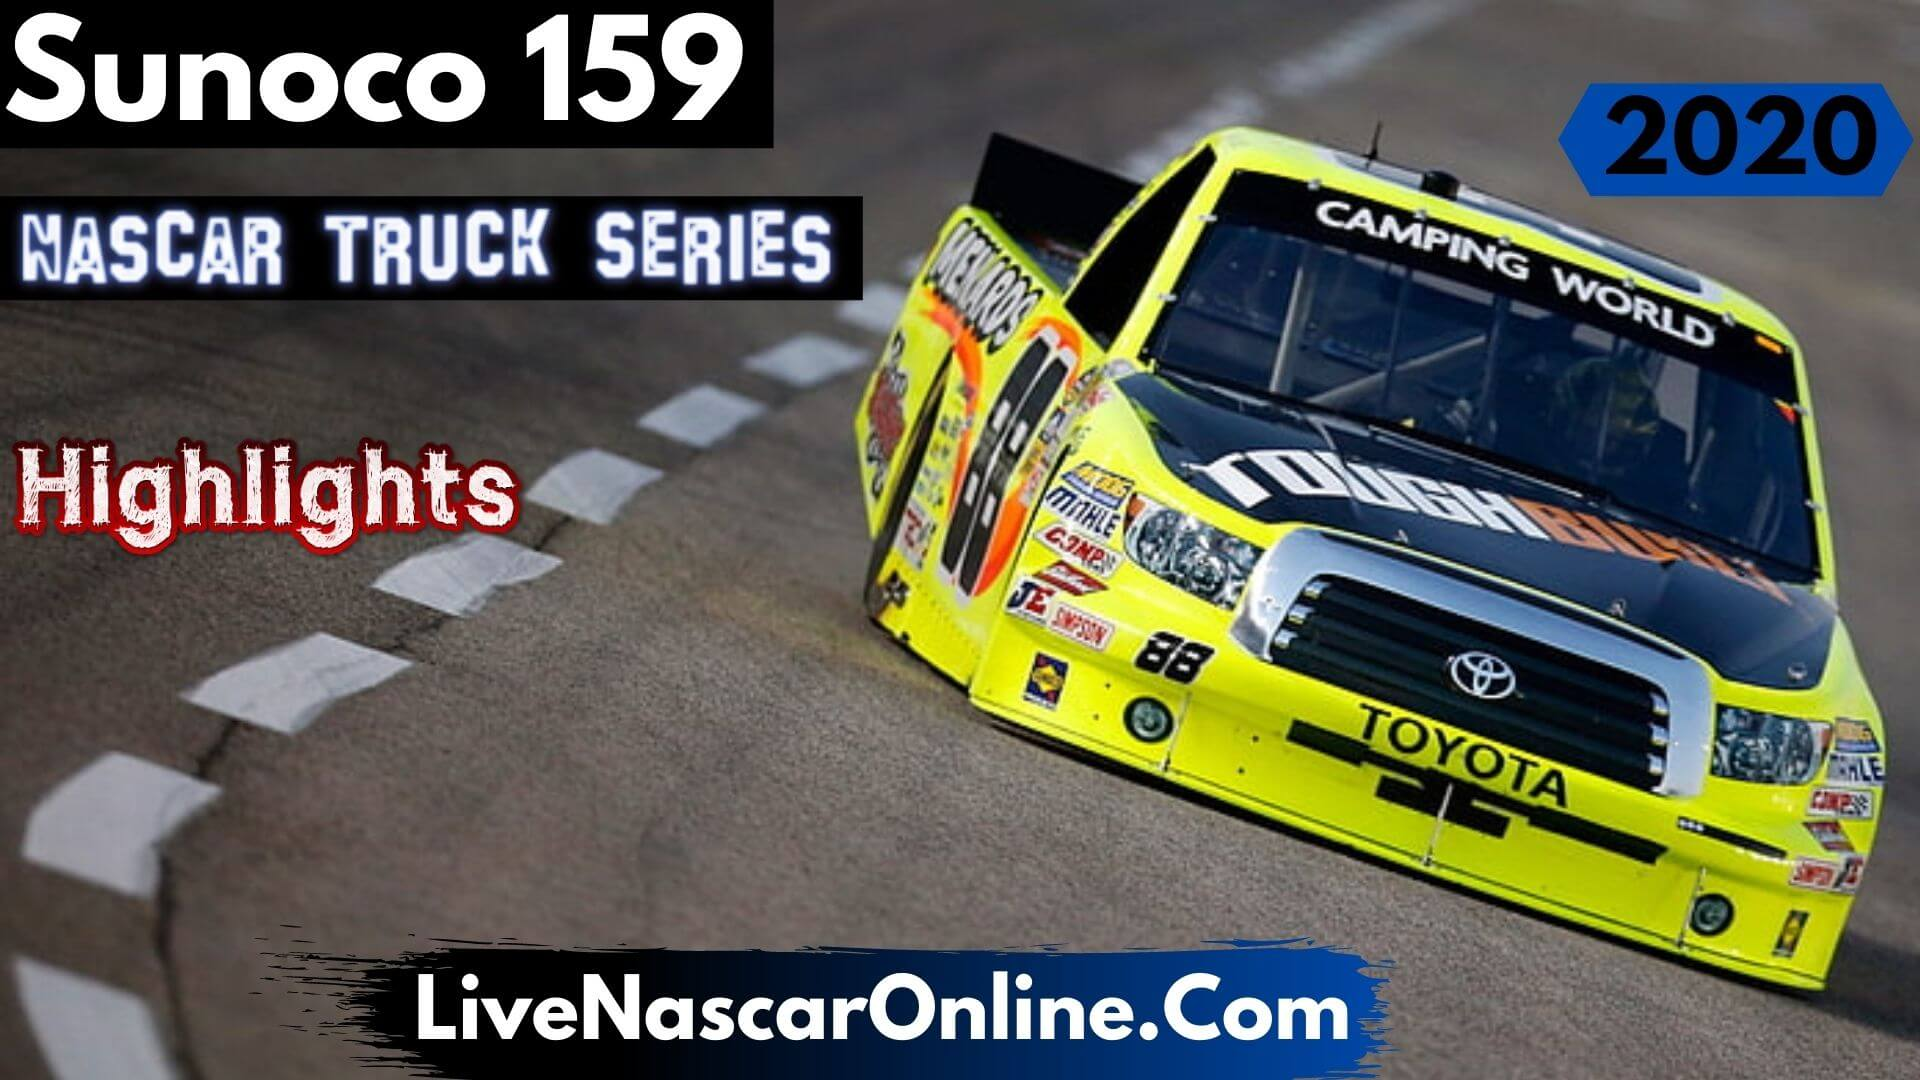 Sunoco 159 Nascar Truck Series Highlights 2020